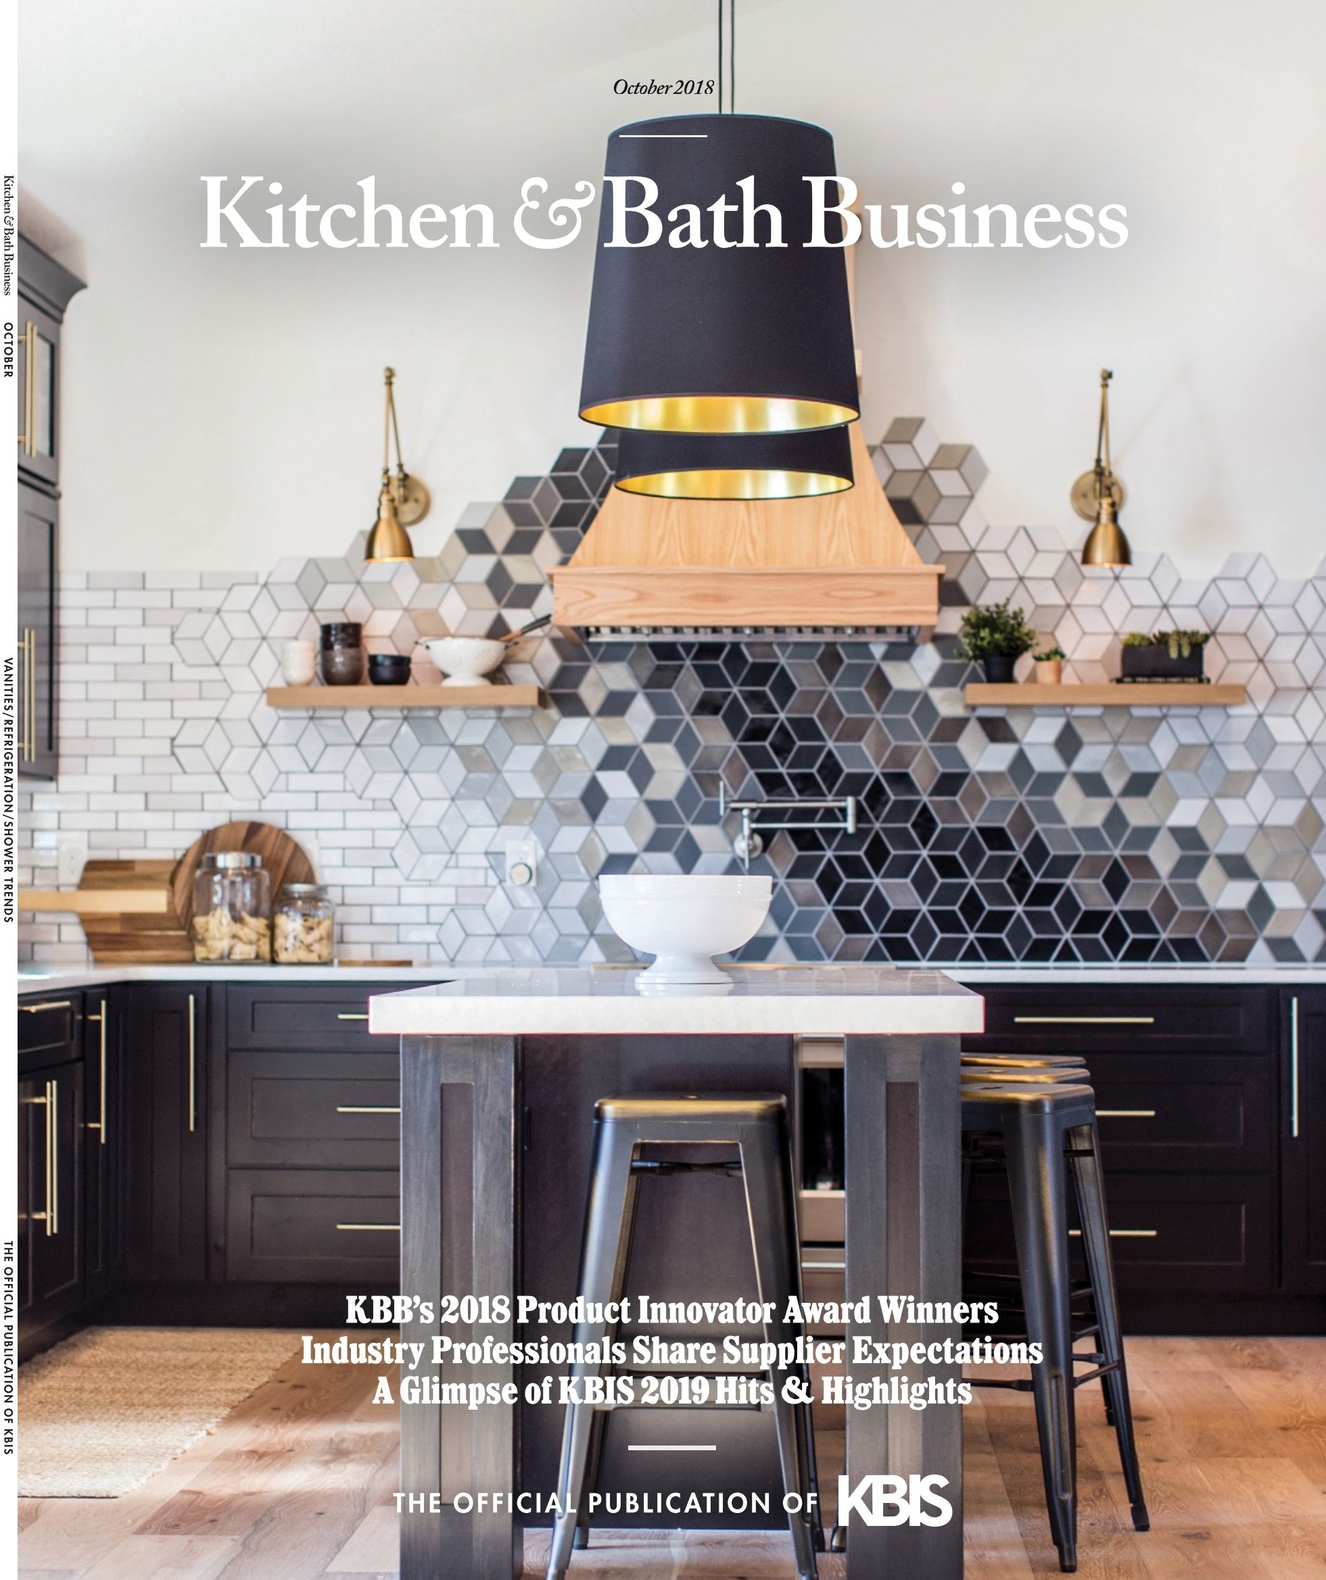 Miraculous Kitchen Bath Business October 2018 Home Interior And Landscaping Mentranervesignezvosmurscom